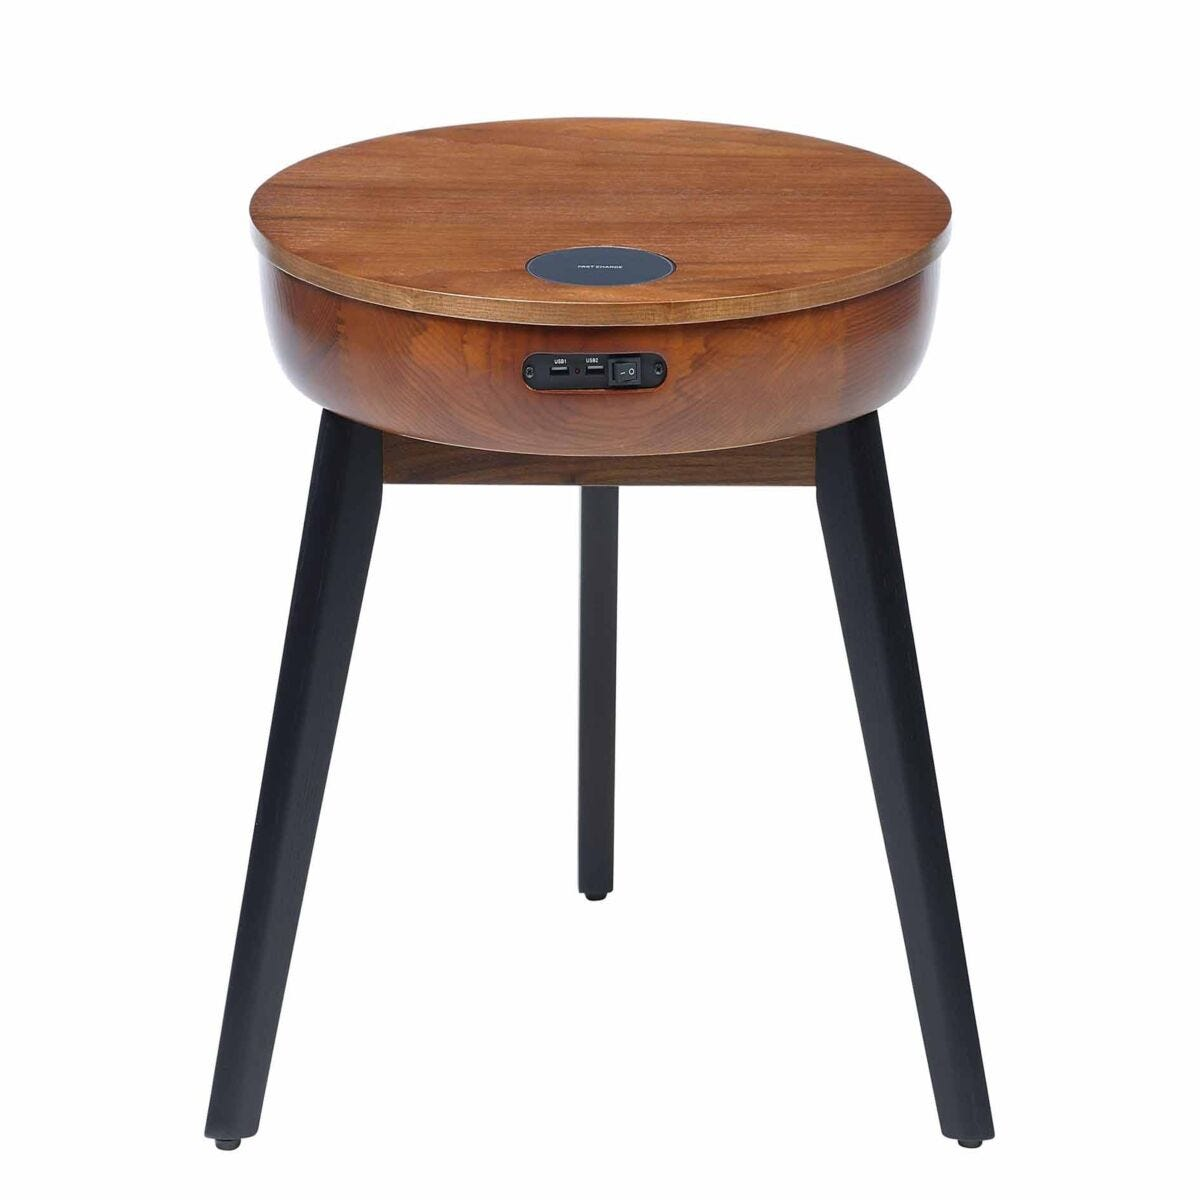 Jual San Francisco Smart Lamp Table with Wireless Charging